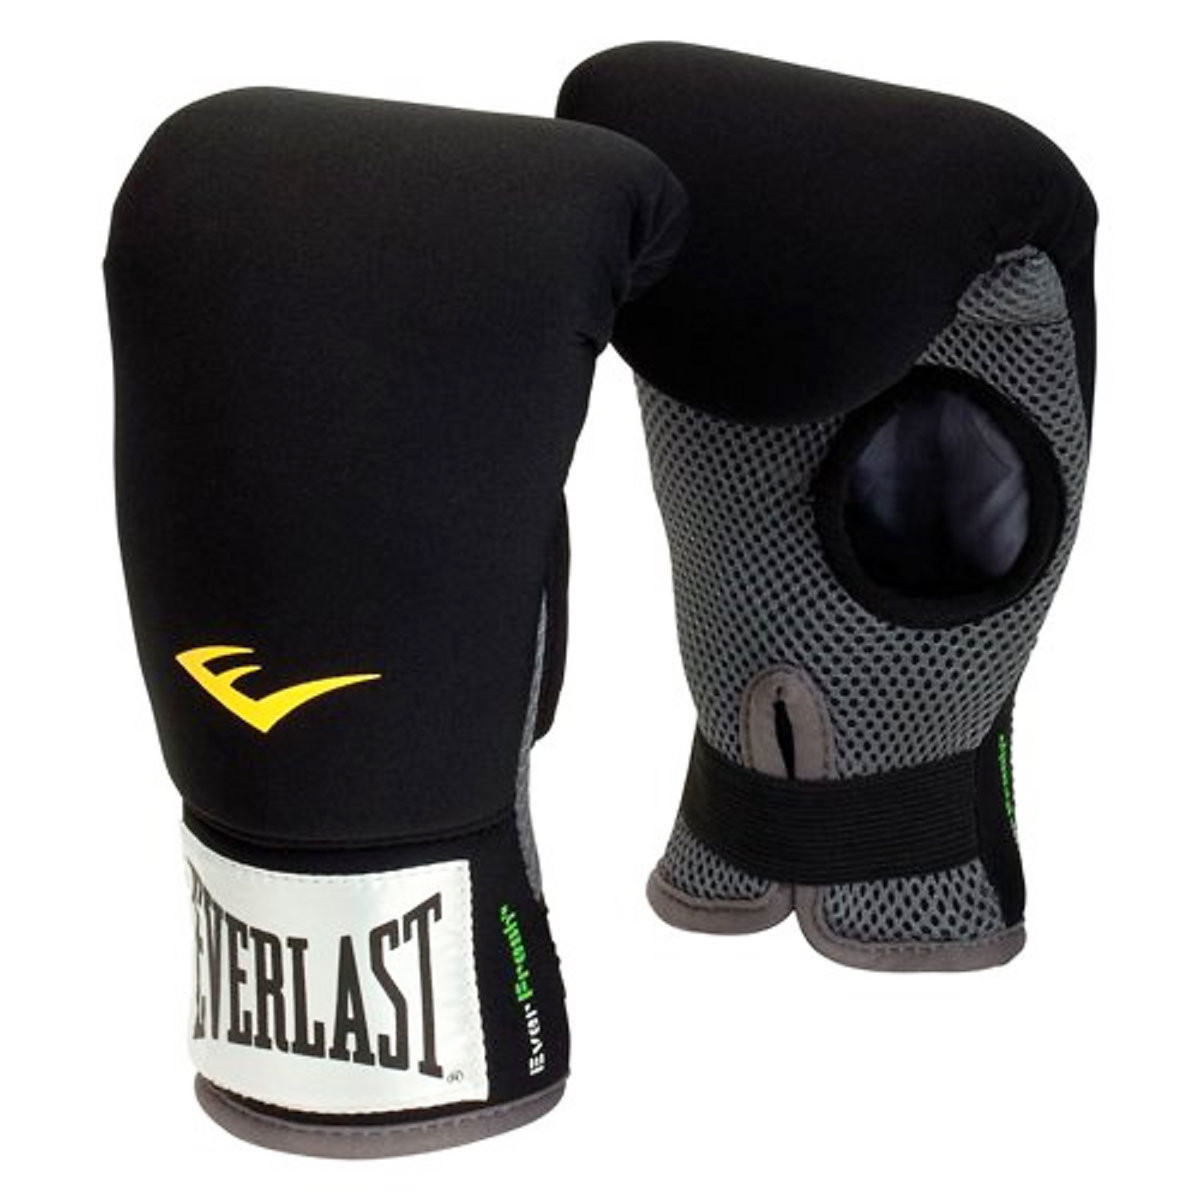 Everlast Neoprene Heavy Bag Boxing Gloves